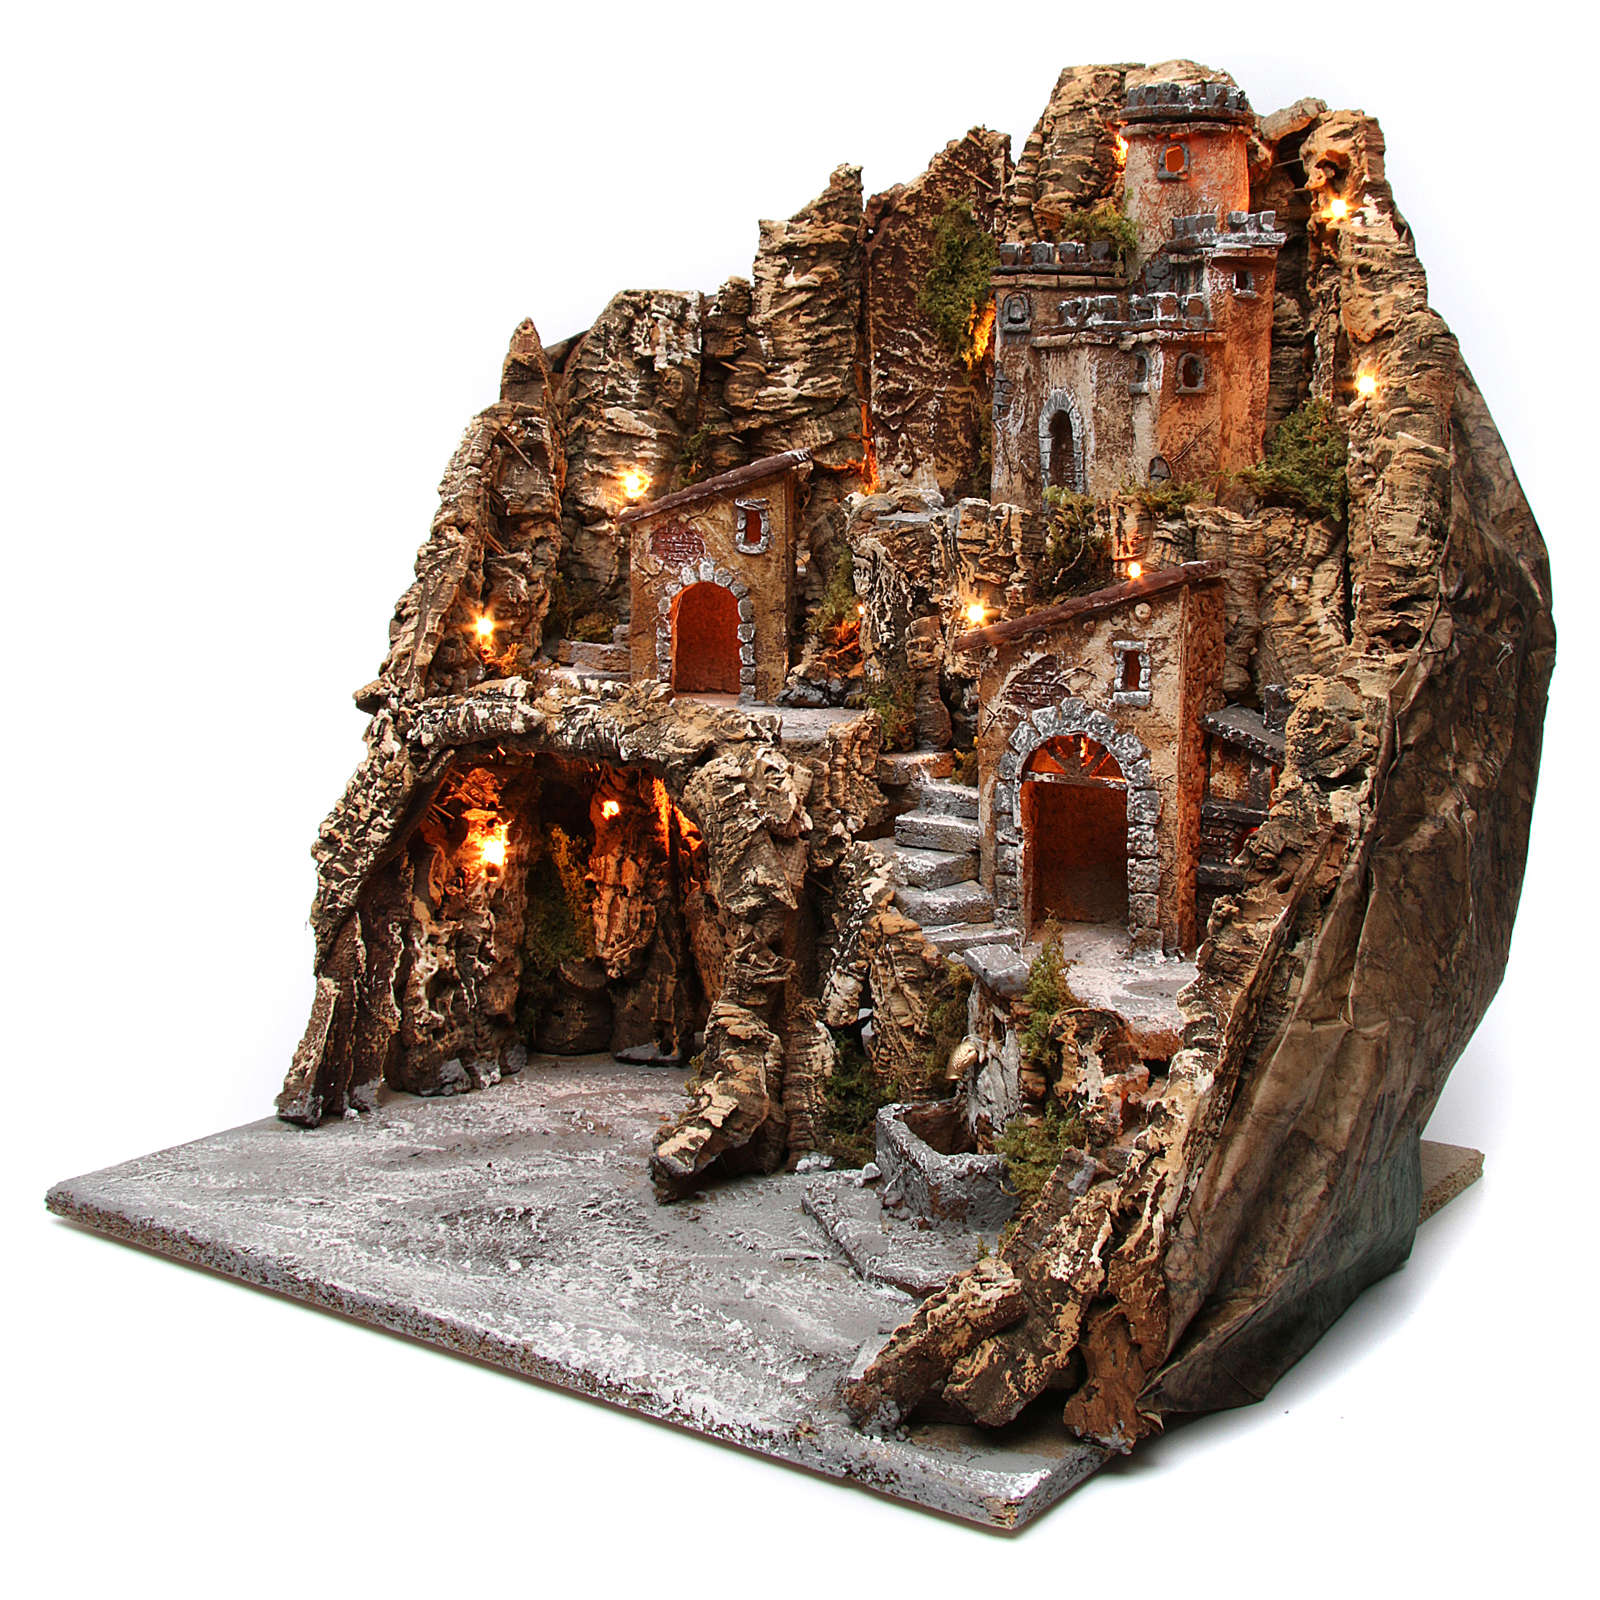 Village for nativity scene with cave, castle and fountain 50x55x60 cm, Neapolitan style 4